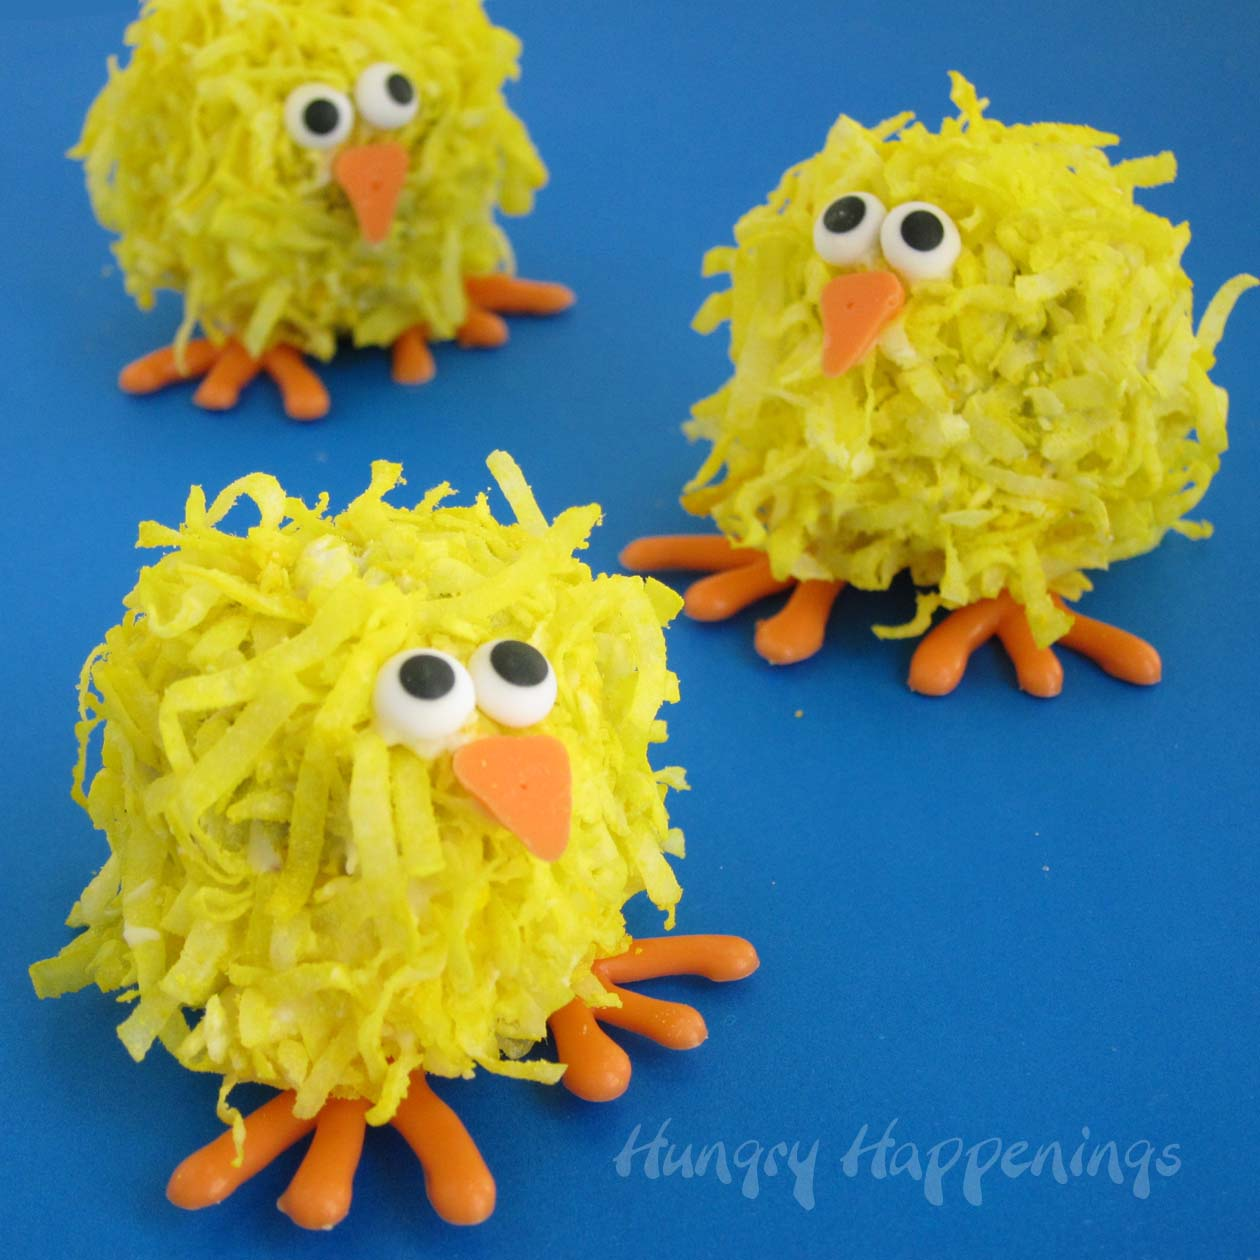 http://1.bp.blogspot.com/-giKGQeer2ck/T3Jc5ftsw9I/AAAAAAAACnE/KDwKVL6NDoc/s1600/Easter%20cake%20balls,%20pops,%20recipe,%20chicks,%20holiday,%20edible%20crafts,%20recipes%20.jpg